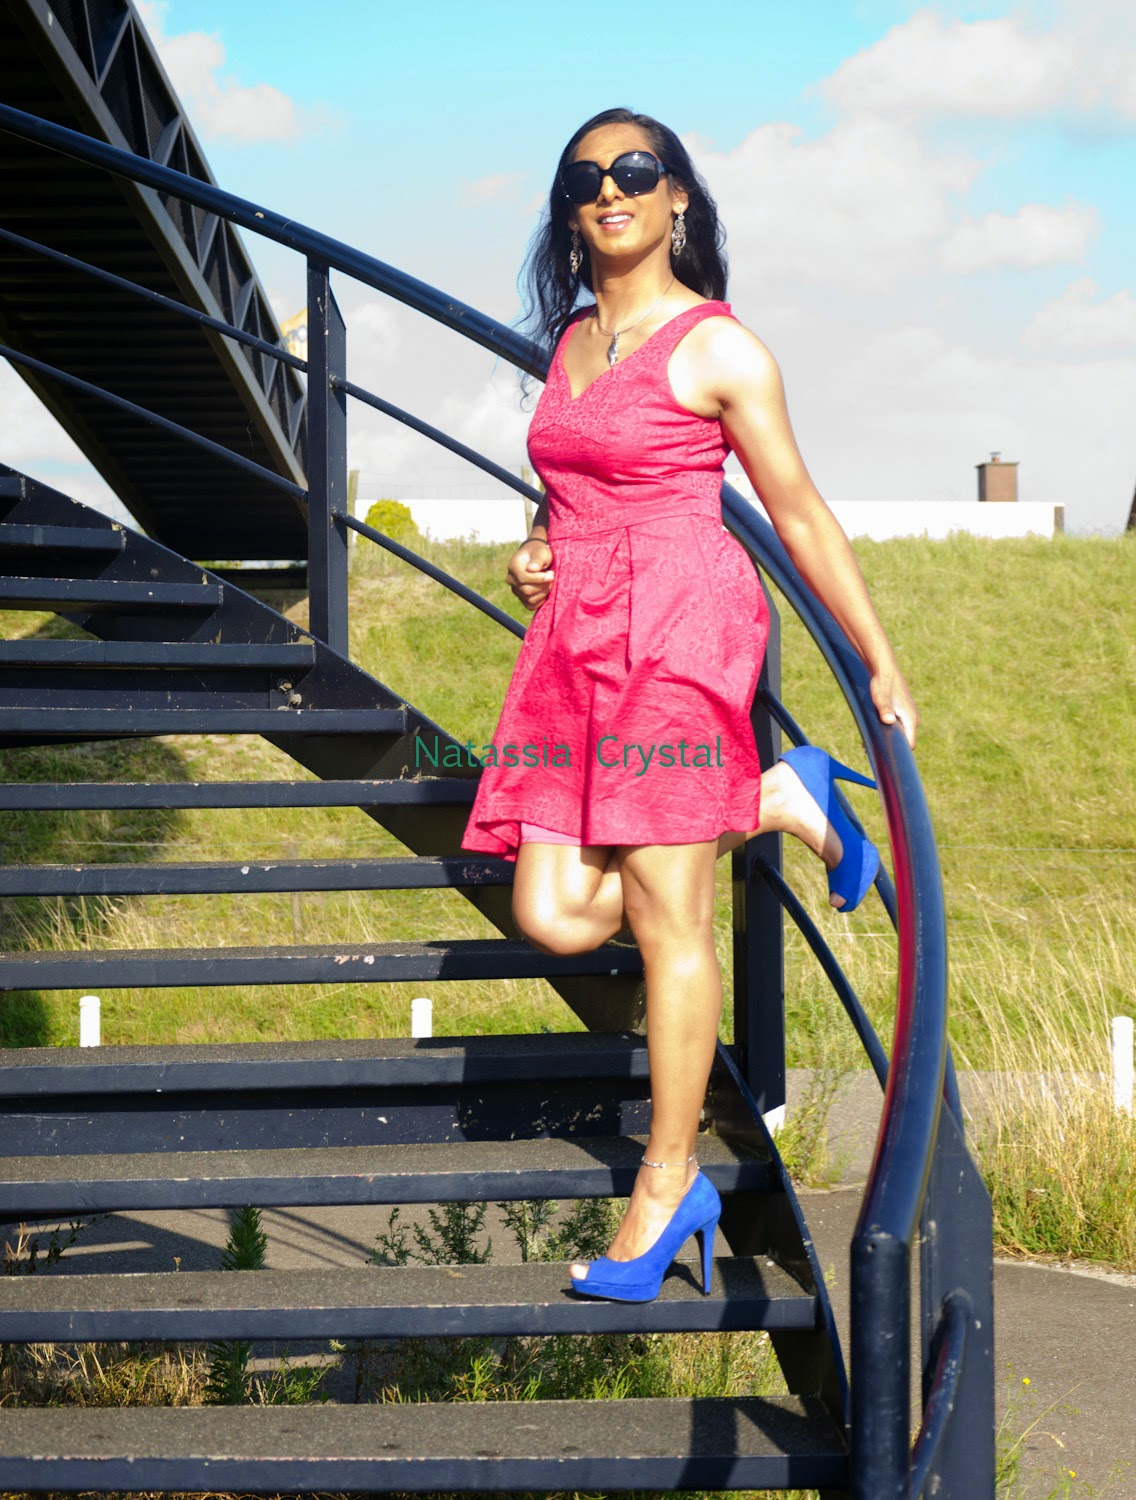 Natassia pink dress blue heels stairs one leg stand